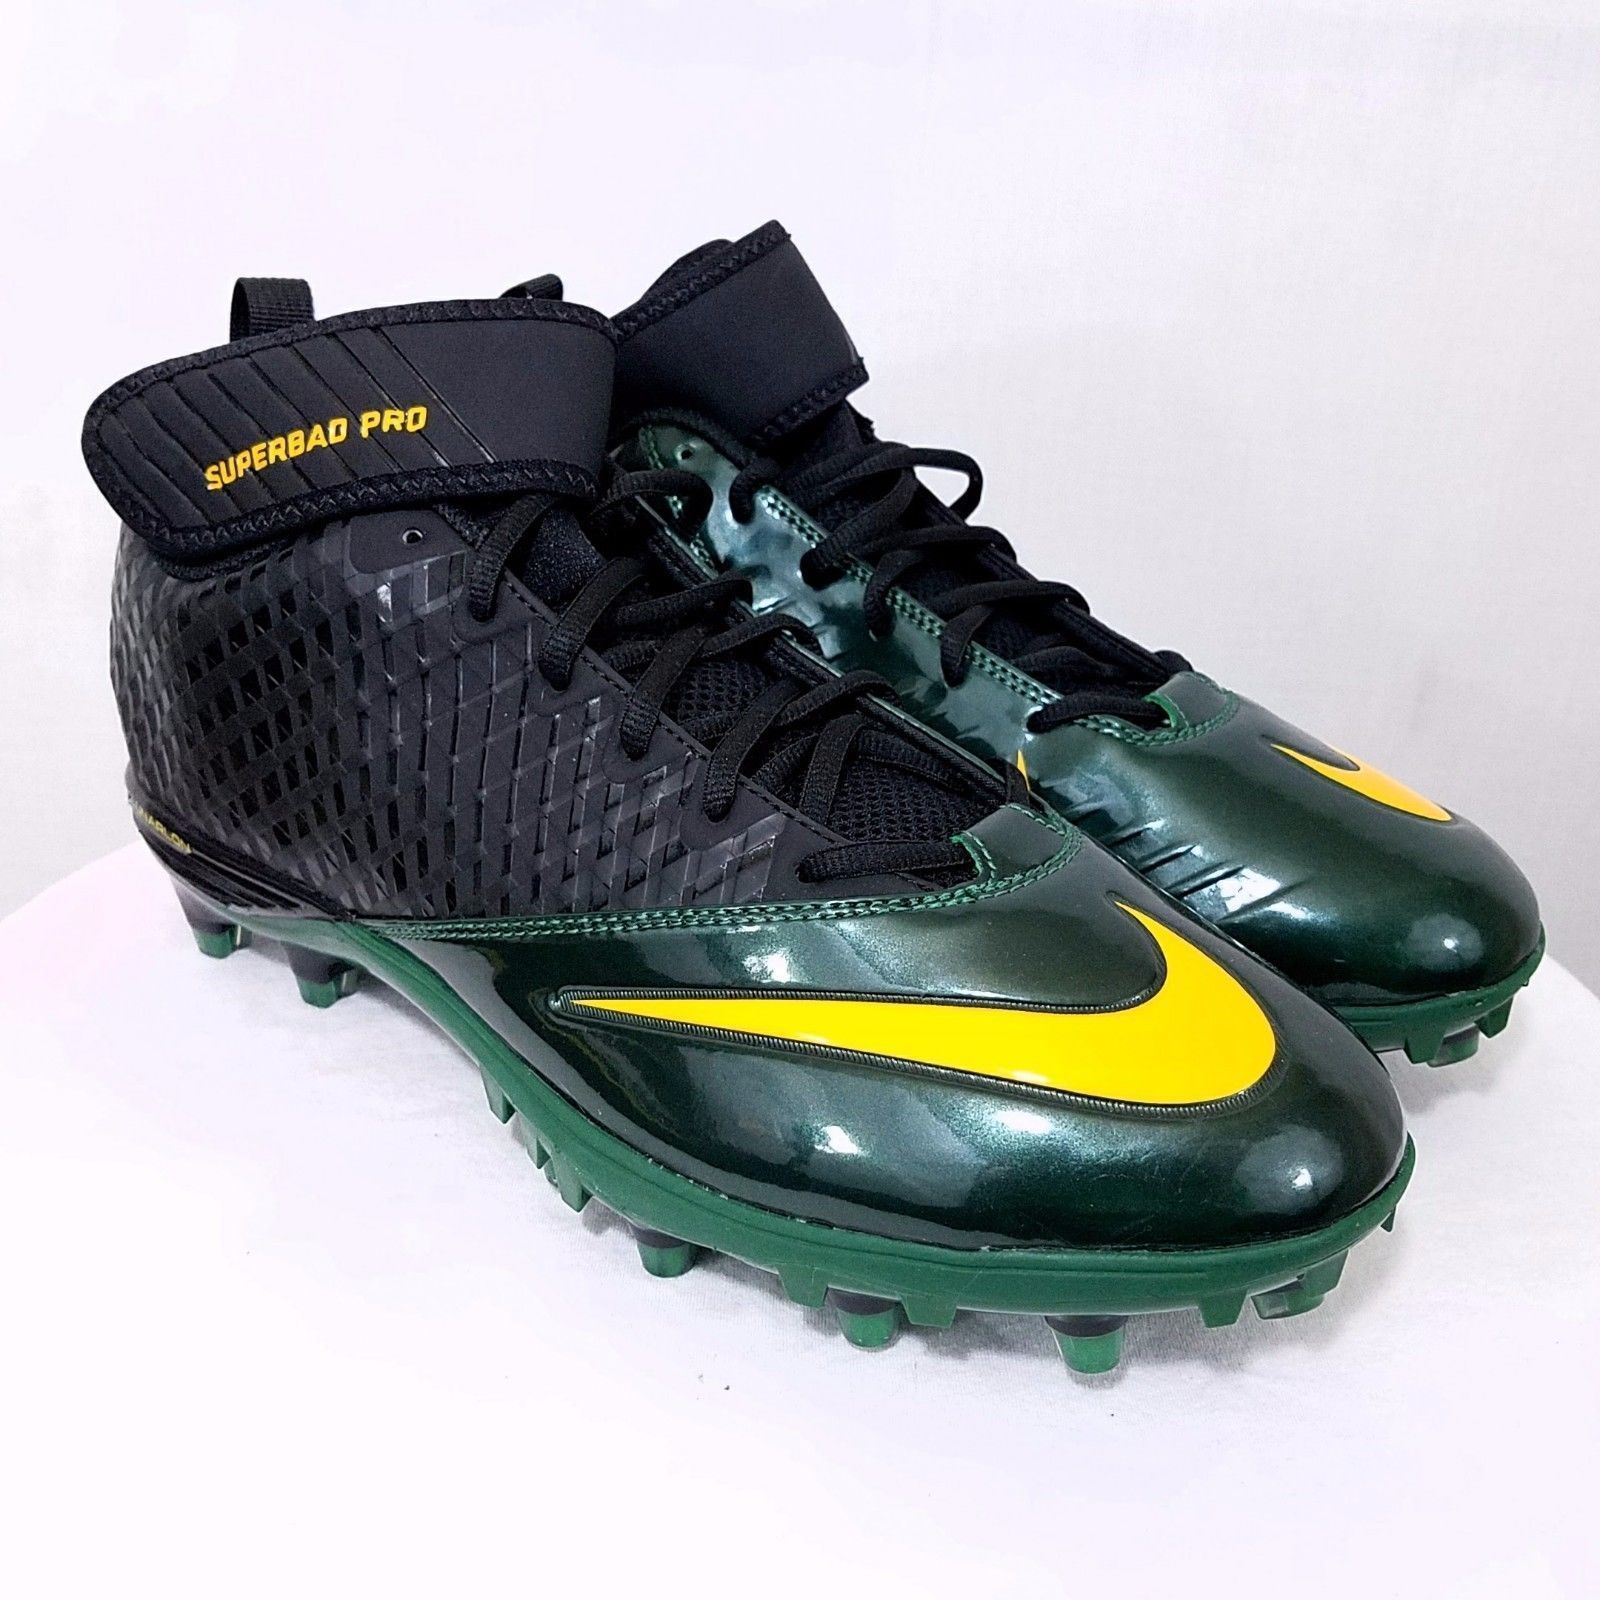 competitive price 6fbc0 68fd6 Nike Lunar Super Bad Pro Football Cleats 15 Green Yellow Black NEW